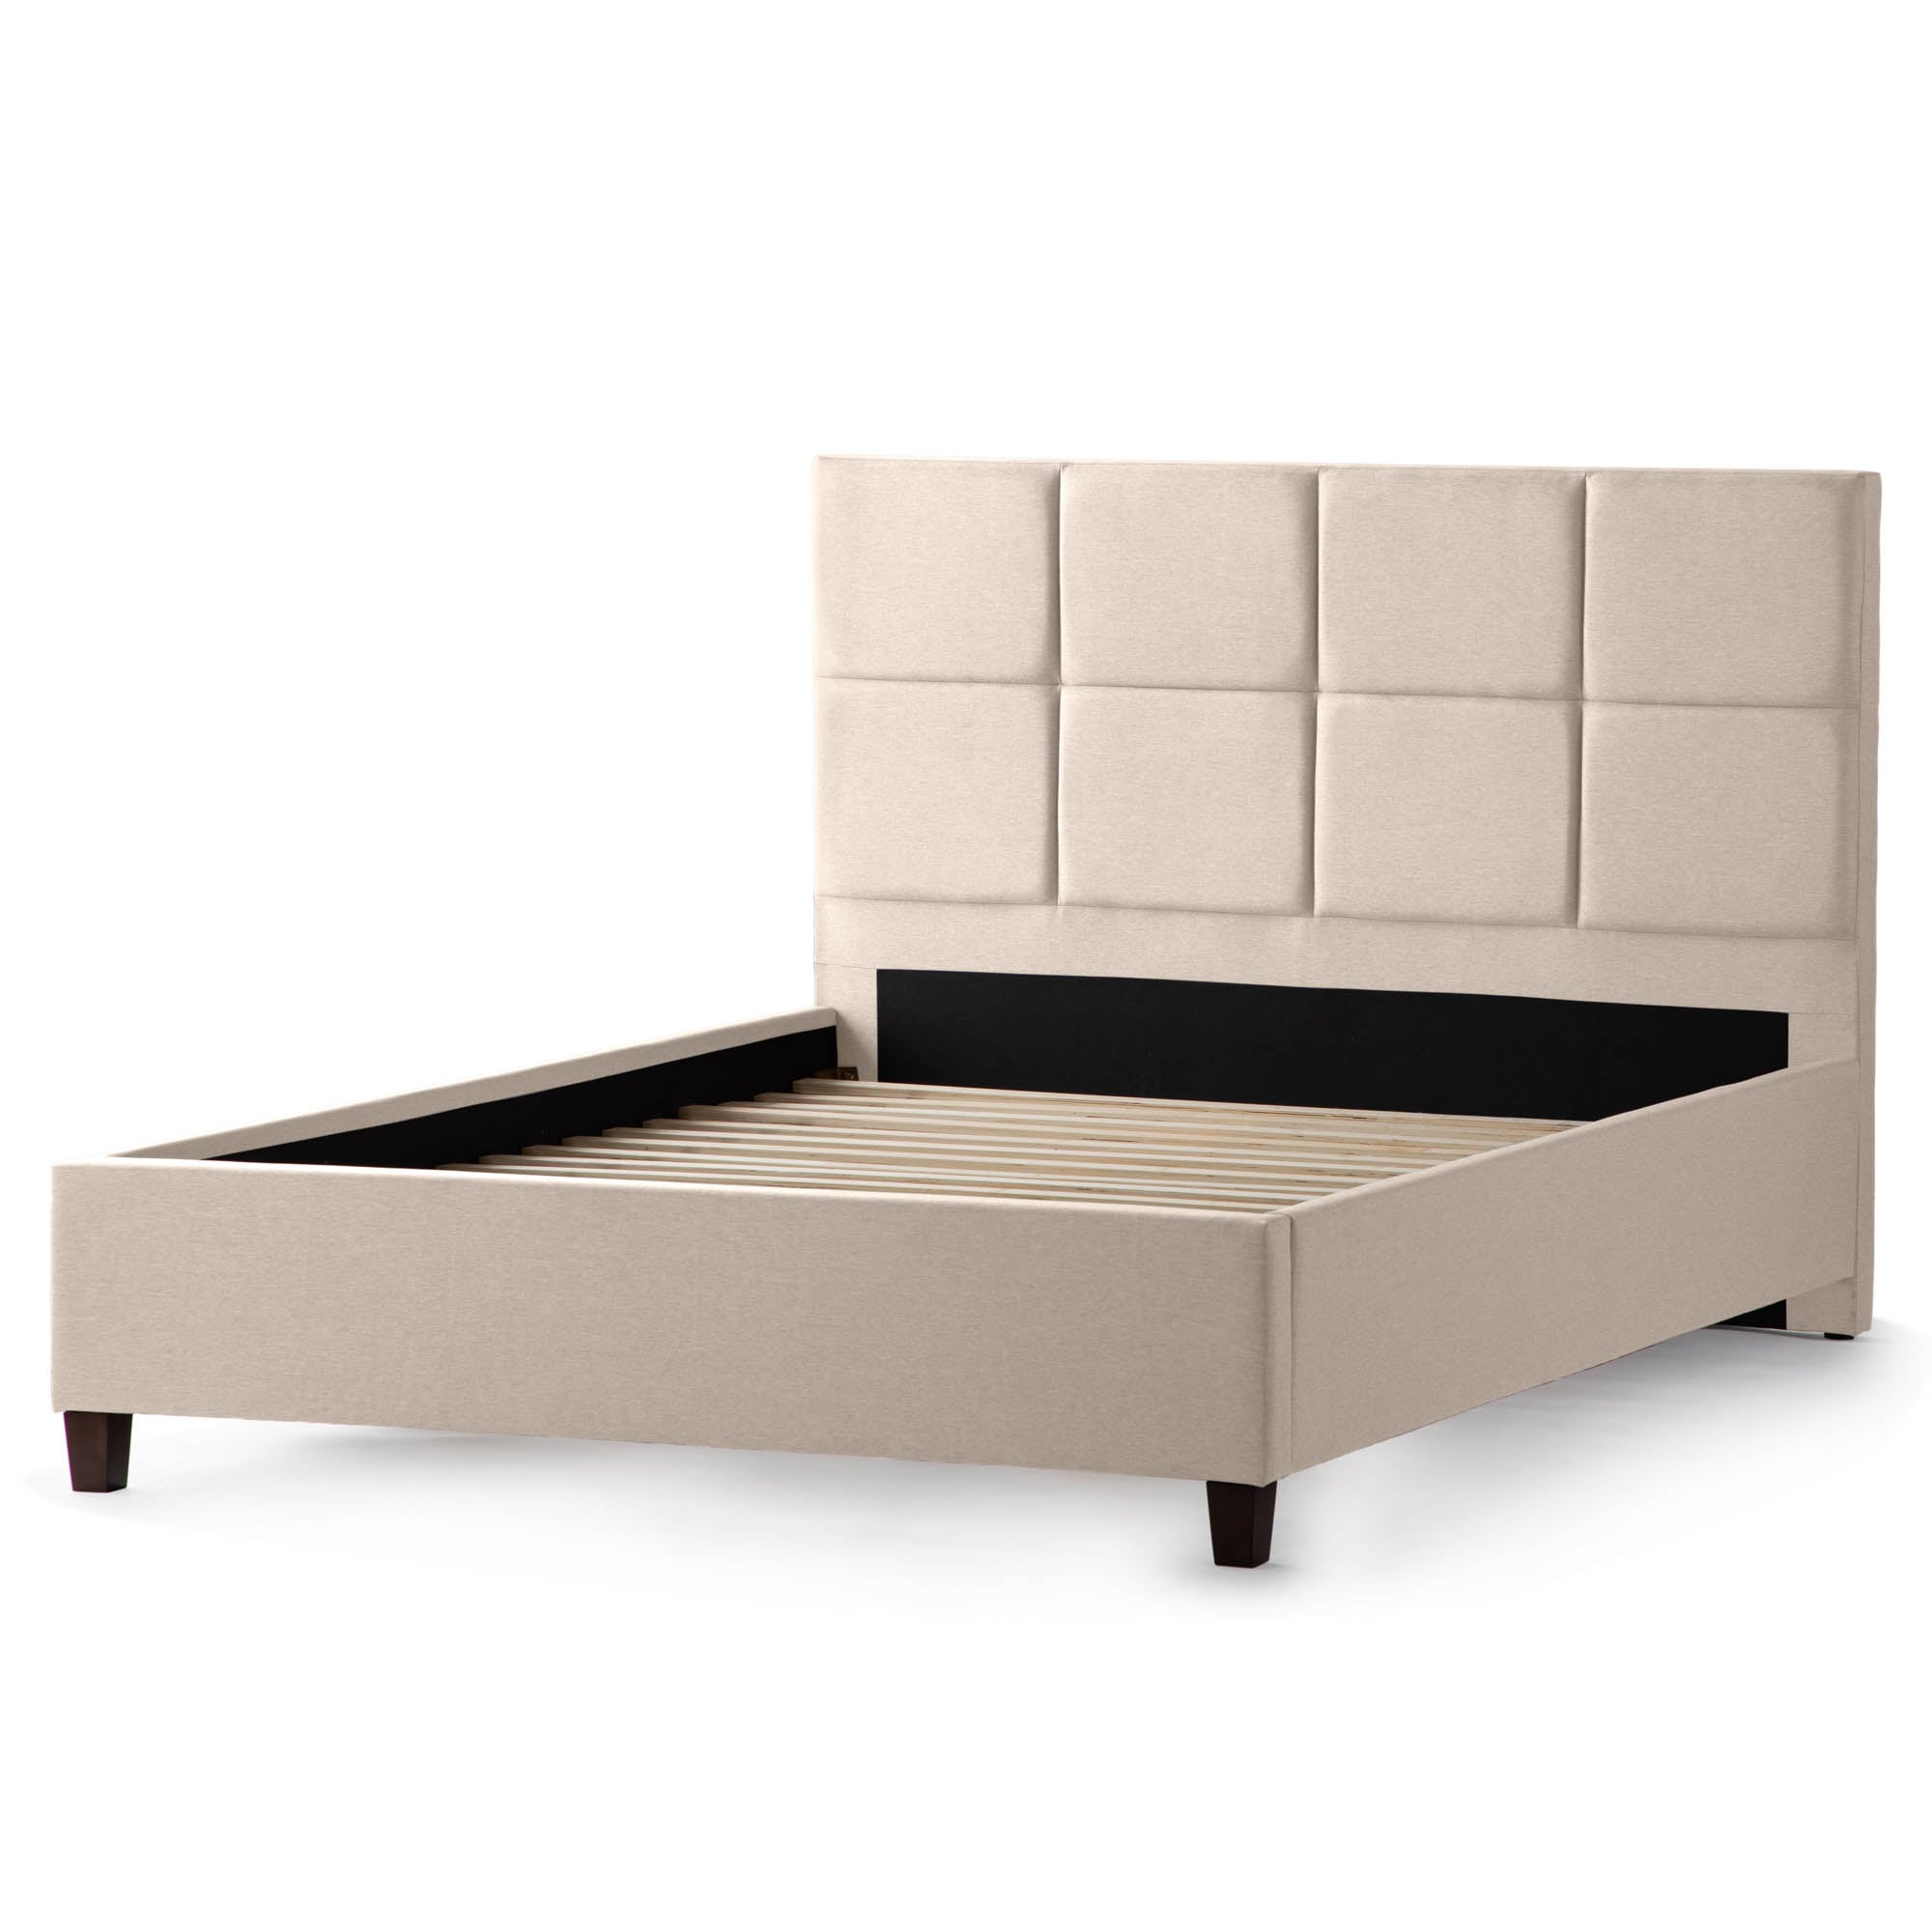 Yogasleep by Malouf Scoresby Designer Bed Oat - Yogasleep by Malouf